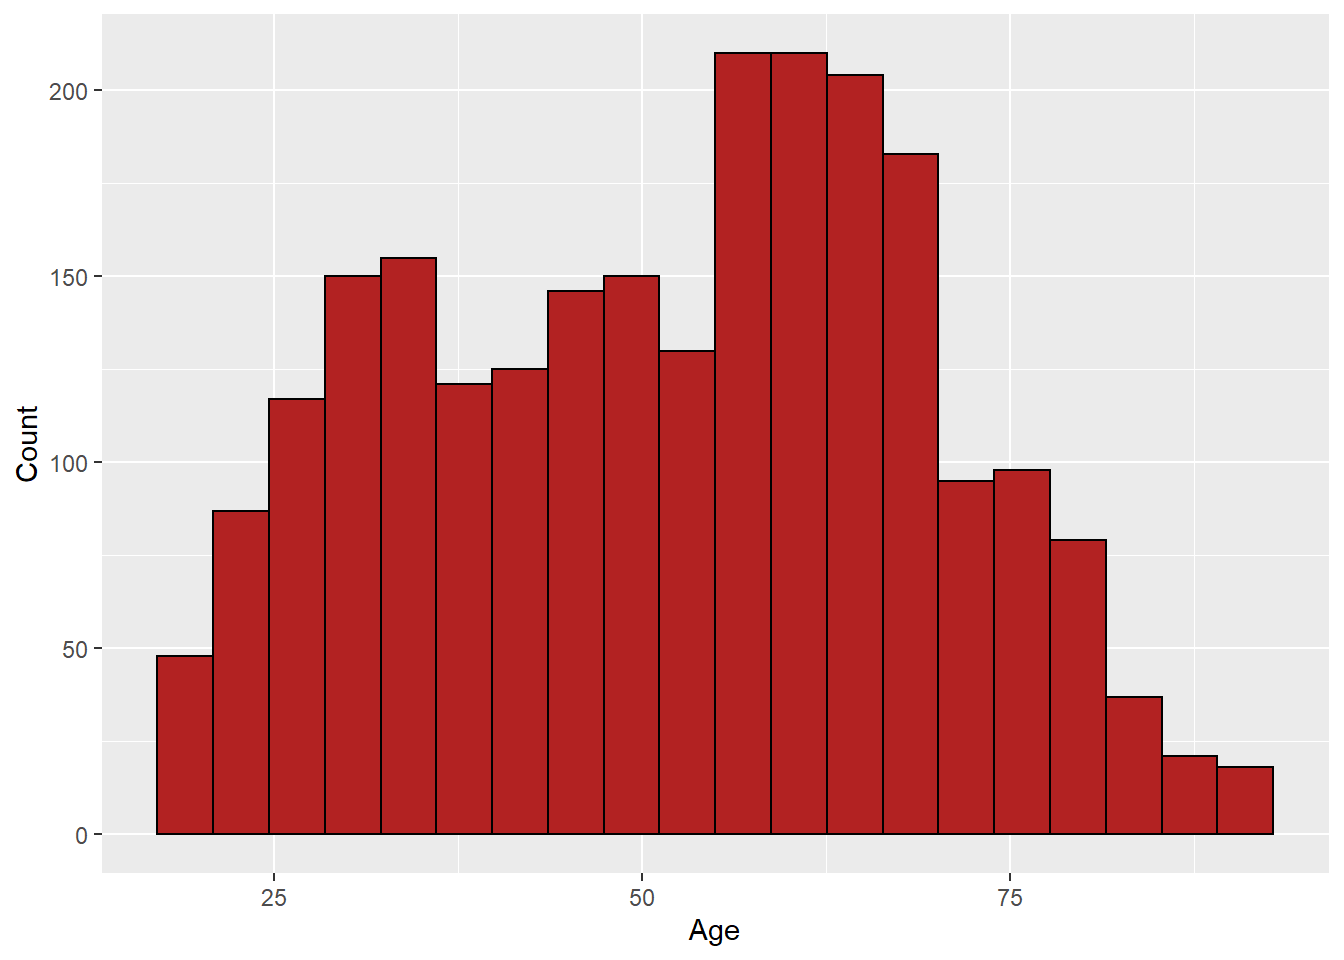 Histogram of Age